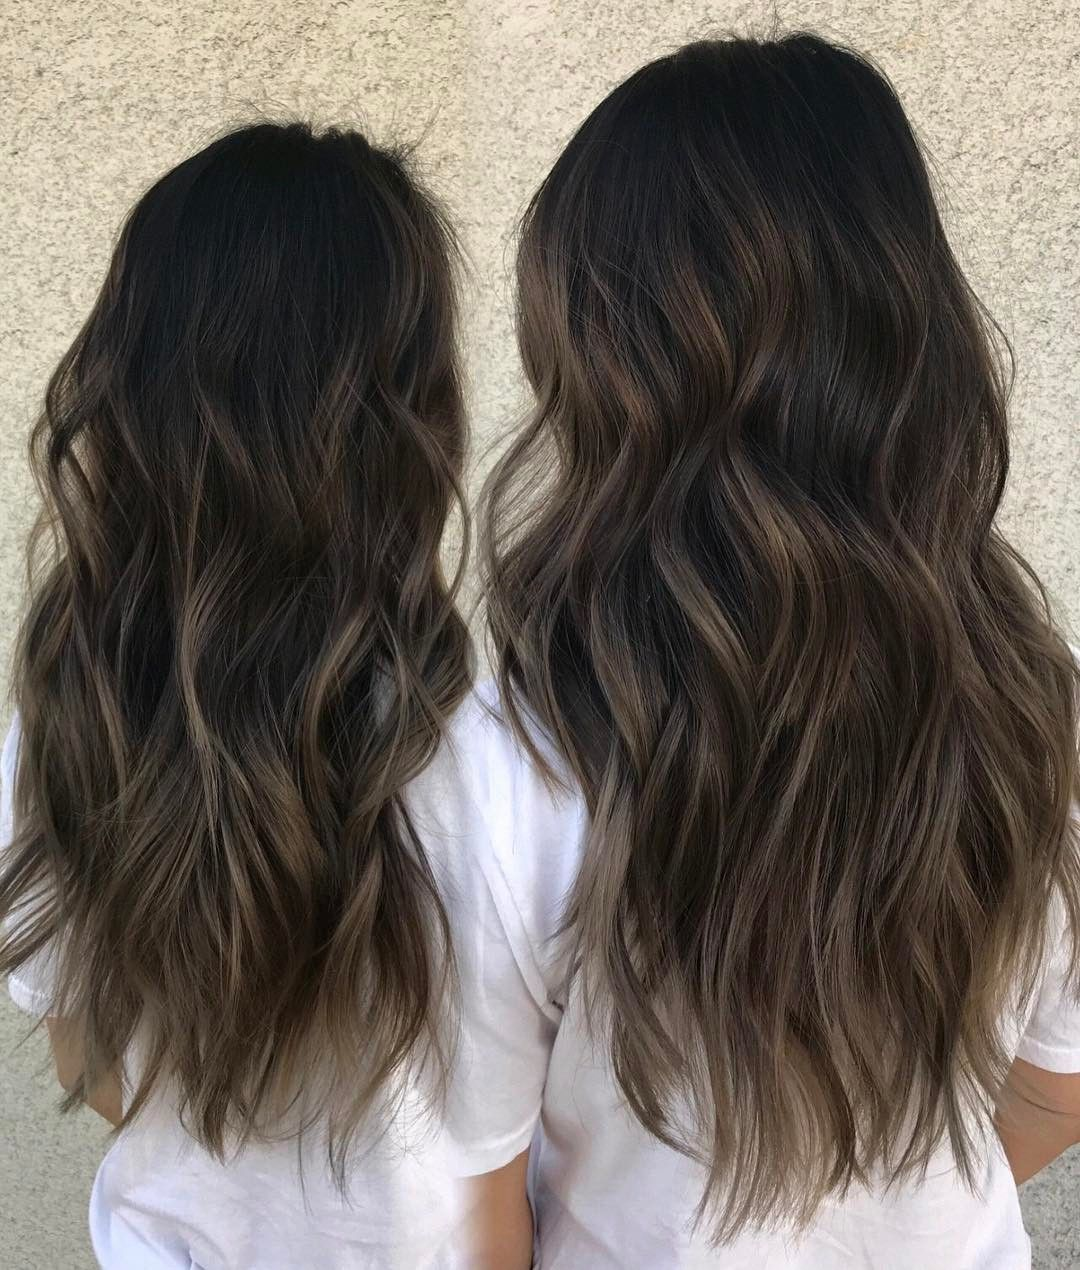 Best 25+ Dark hair lowlights ideas on Pinterest ...